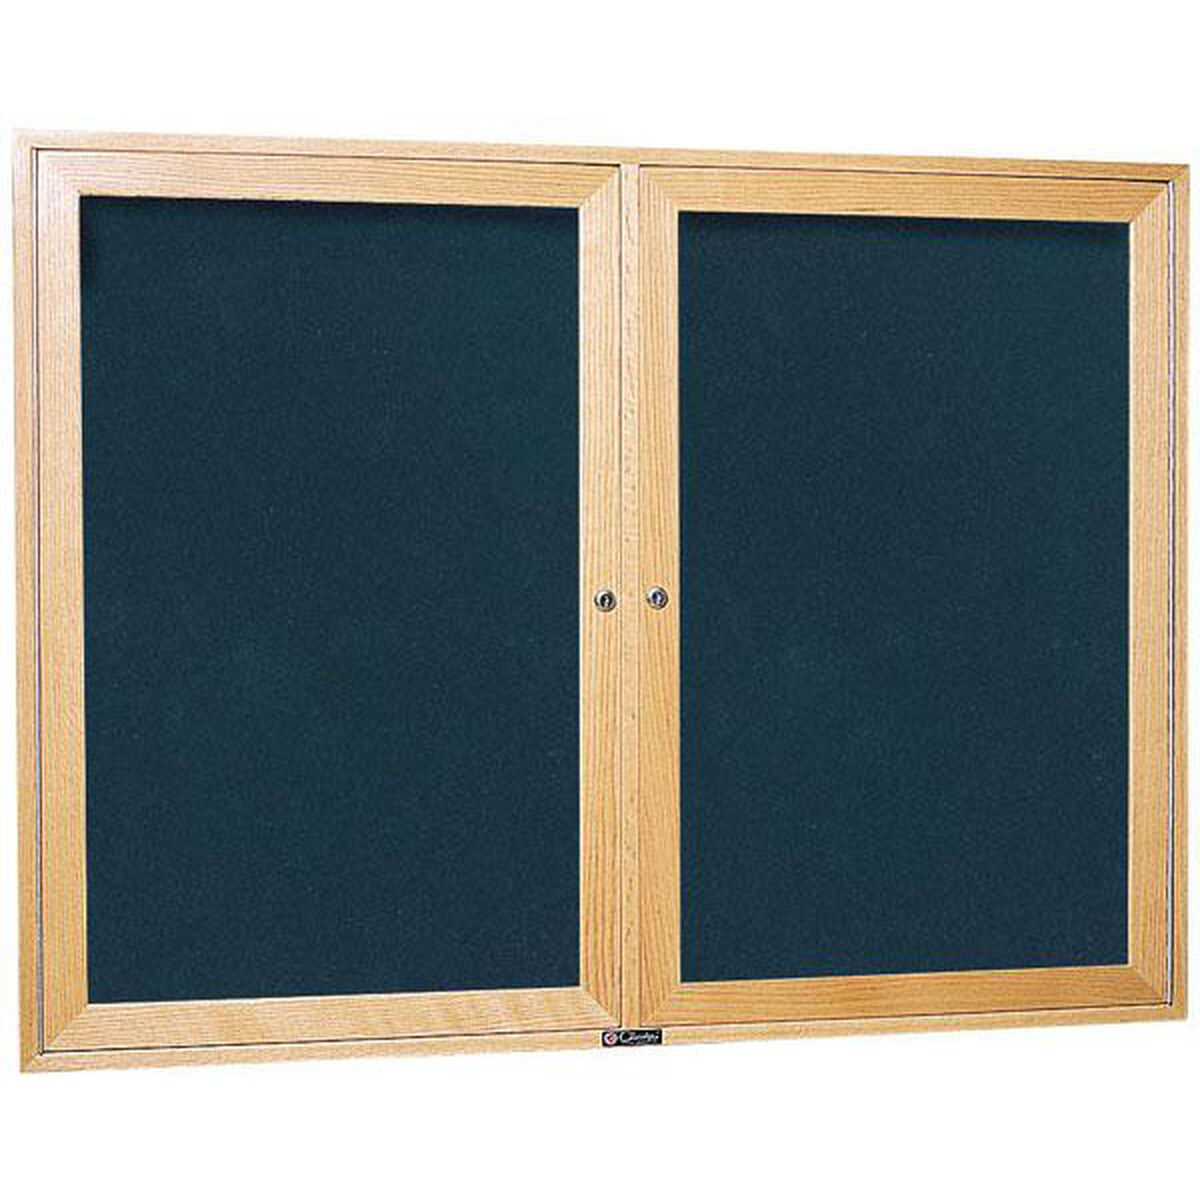 3080 Series Wooden Frame Bulletin Board Cabinet With 2 Locking Tempered Glass Doors 48w X 36h